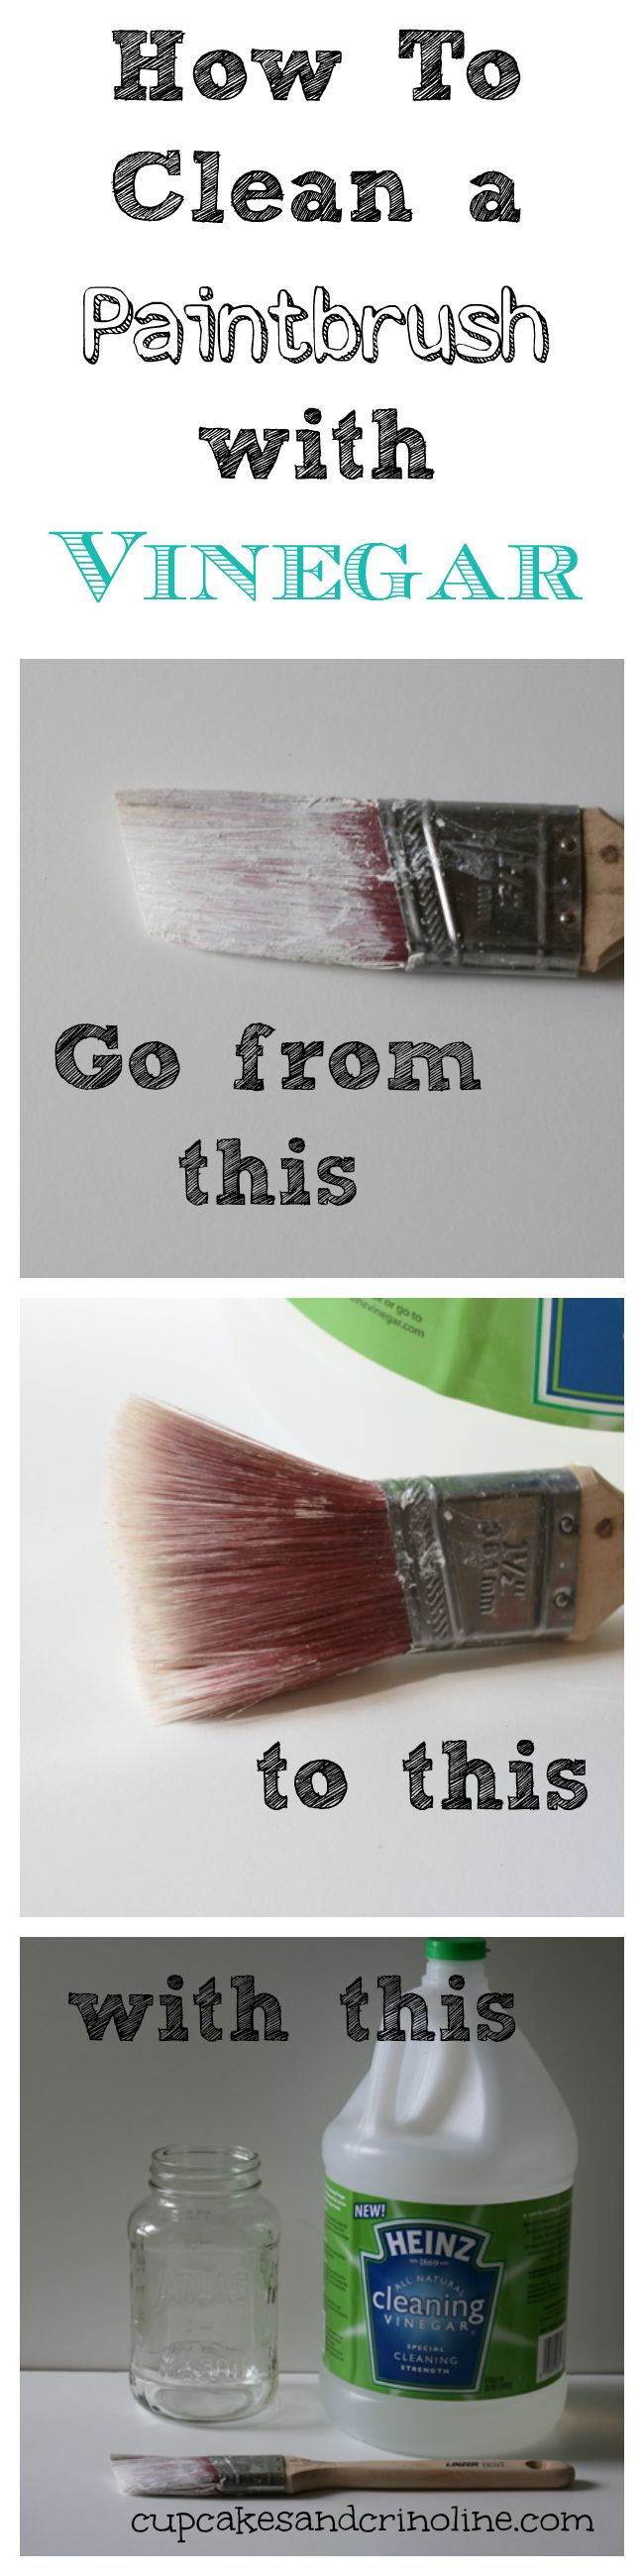 How to clean paintbrushes - How To Clean A Dry And Crusted Paintbrush Easily With Vinegar Cupcakes Crinoline